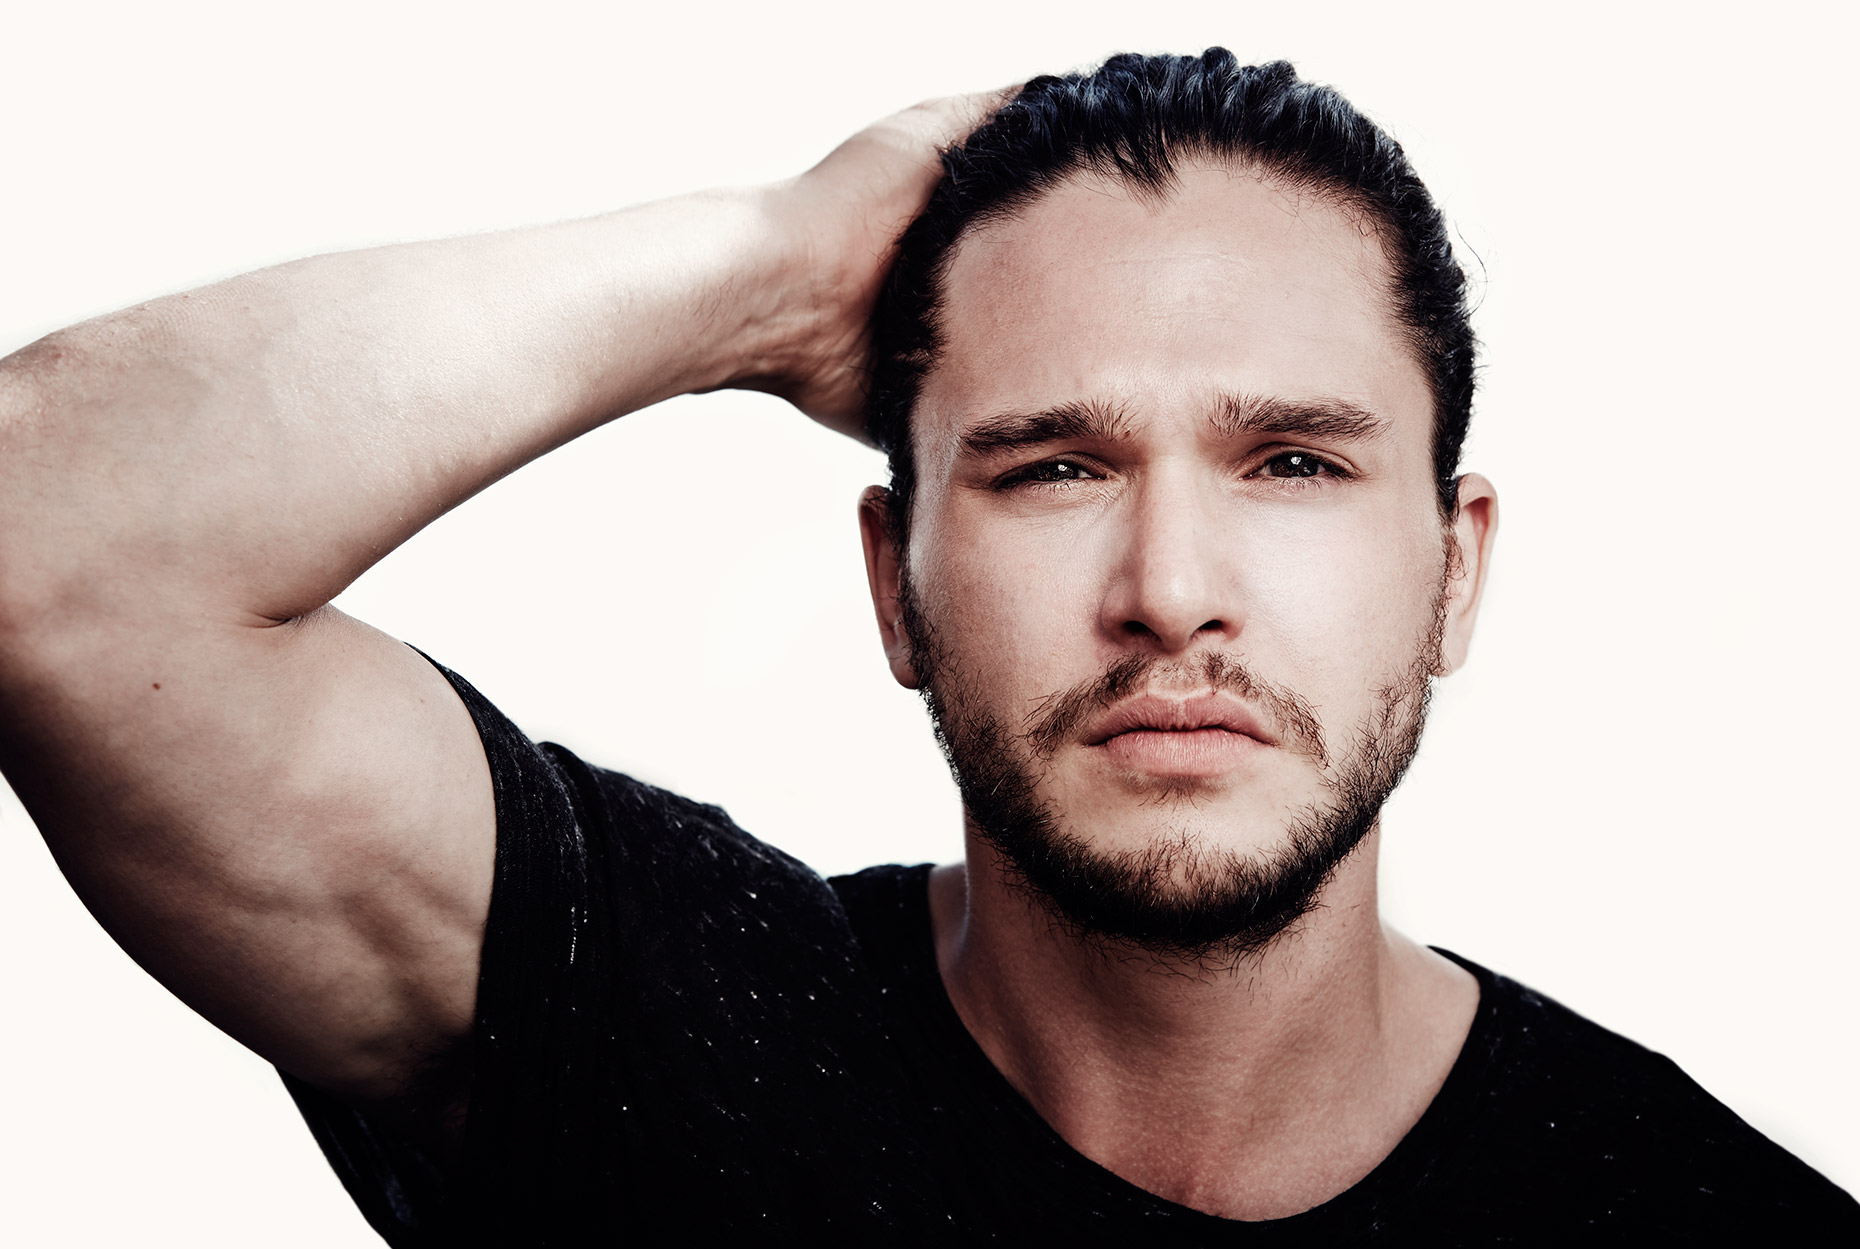 01_kit-harington_3672